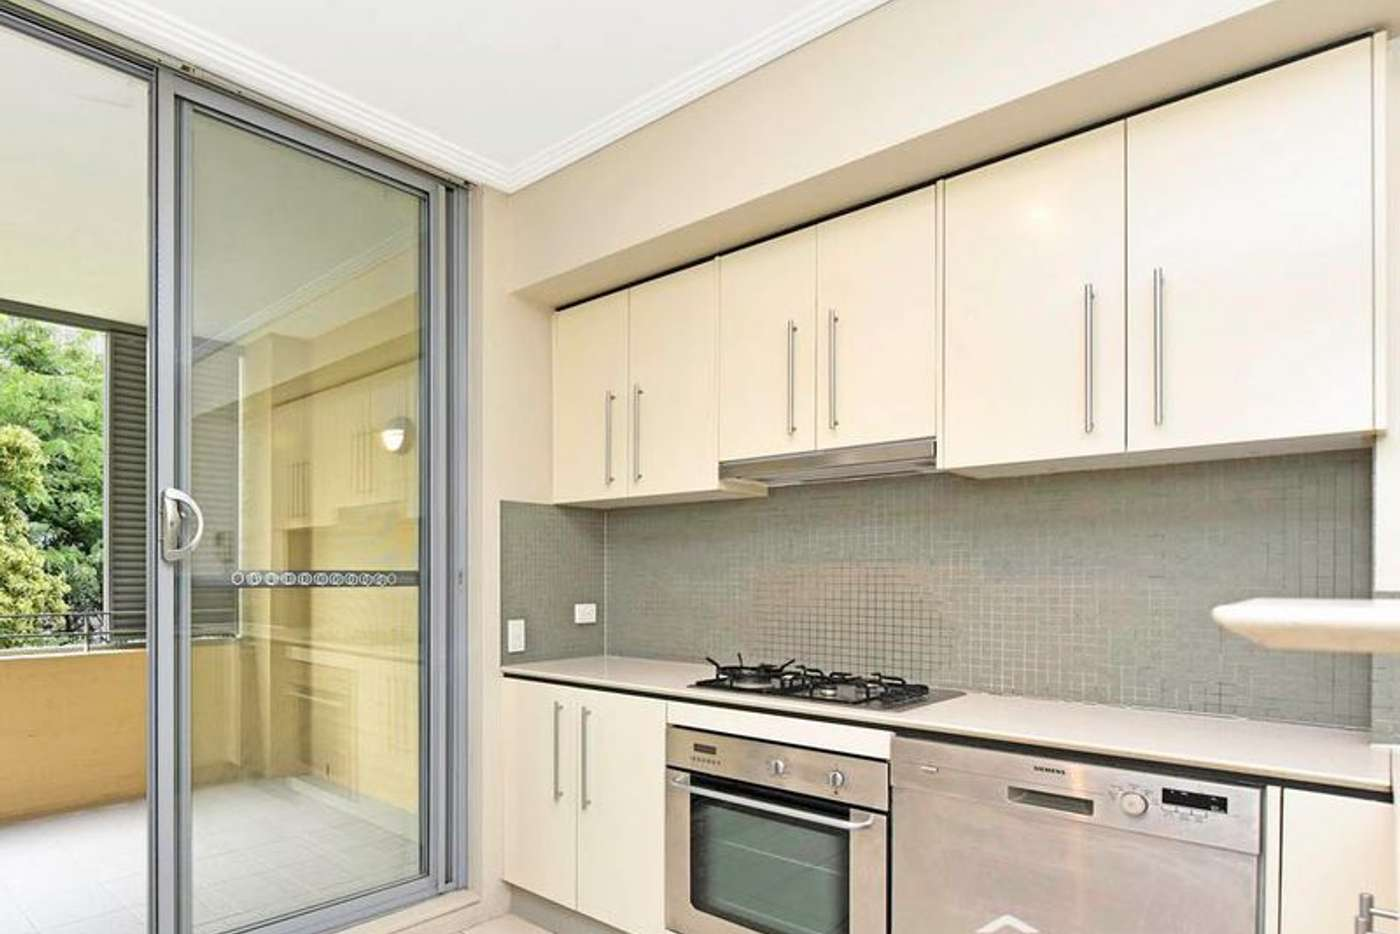 Fifth view of Homely apartment listing, 3 The Piazza, Wentworth Point NSW 2127